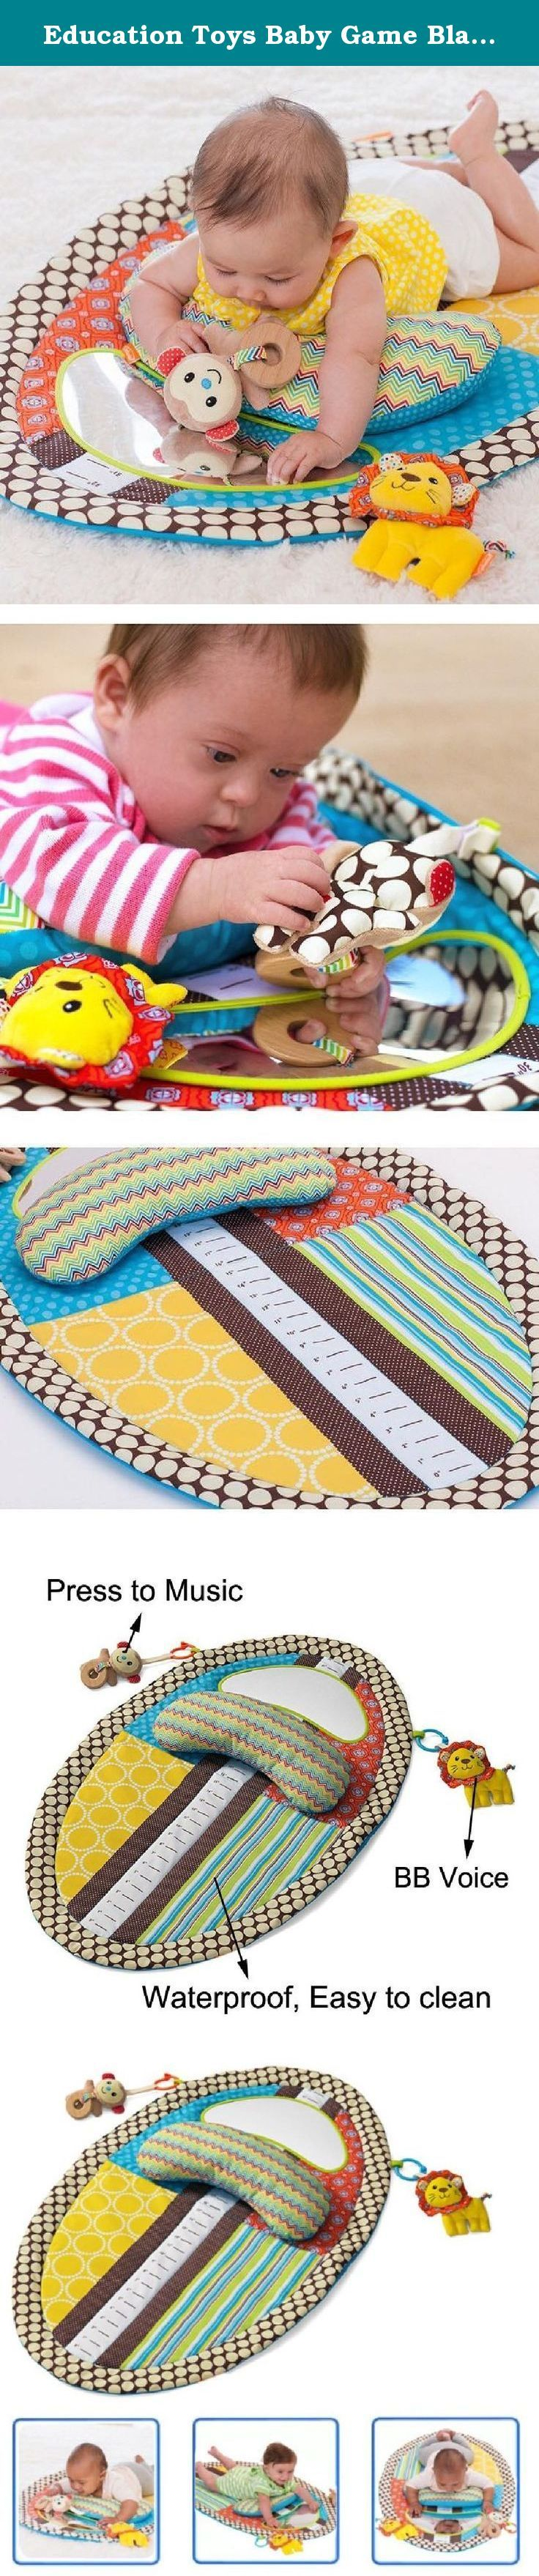 Education Toys Baby Game Blanket Height Carpet Waterproof Urinal Mat. Specifications: Material: Cloth + Polyester fabric Size: 78 x 50 cm Weight: 0.4 kg Age: 0~3 years BB Voice: squeeze/pinch to BiBi voice Music: Play sweet music when press the head of the monkey .